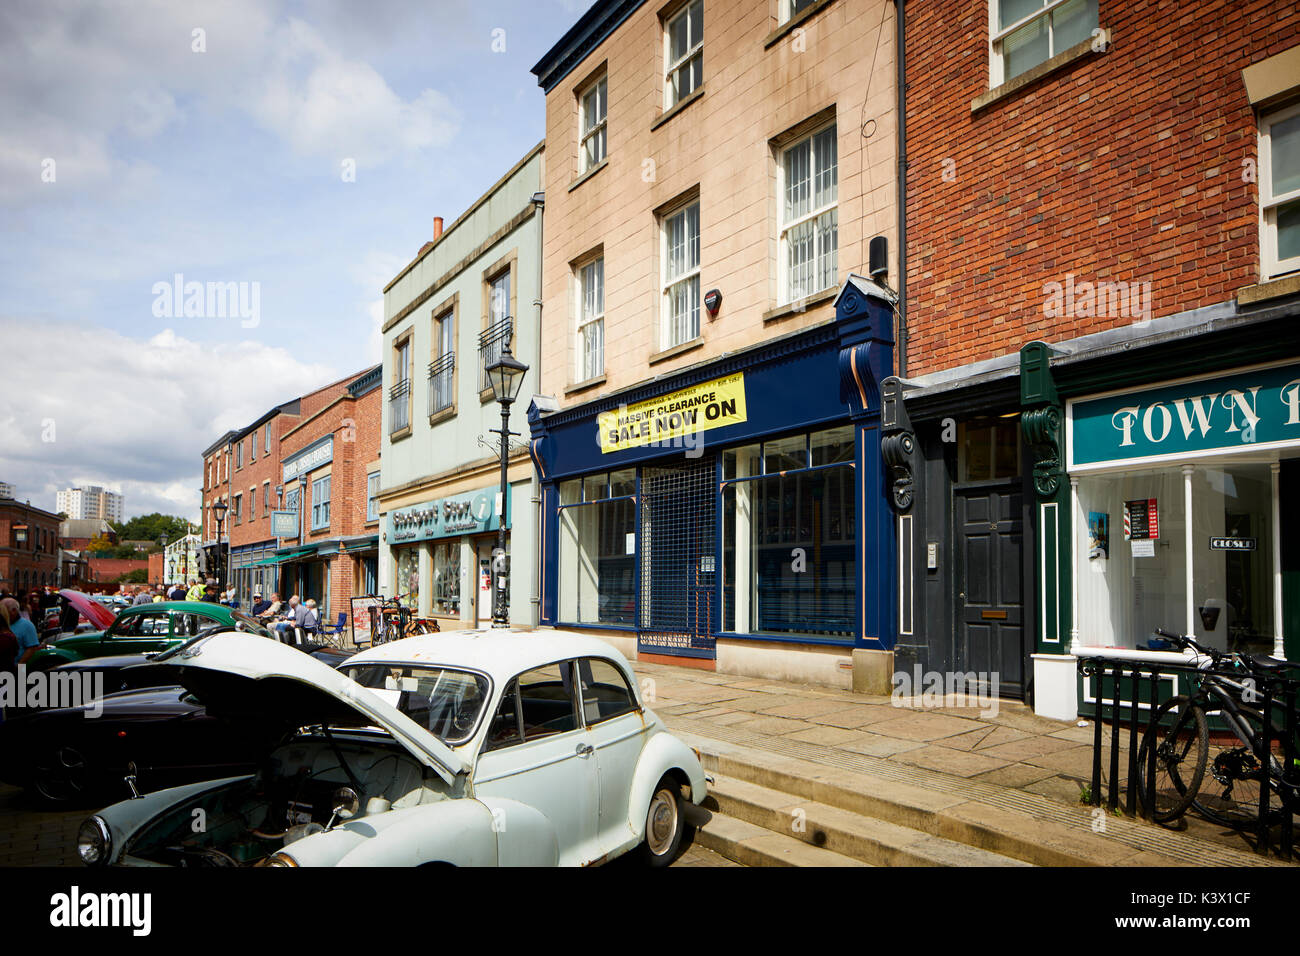 Landmark Stockport Town Centre Cheshire in gtr Manchester St Historic buildings around the market area and vintage retro car show - Stock Image